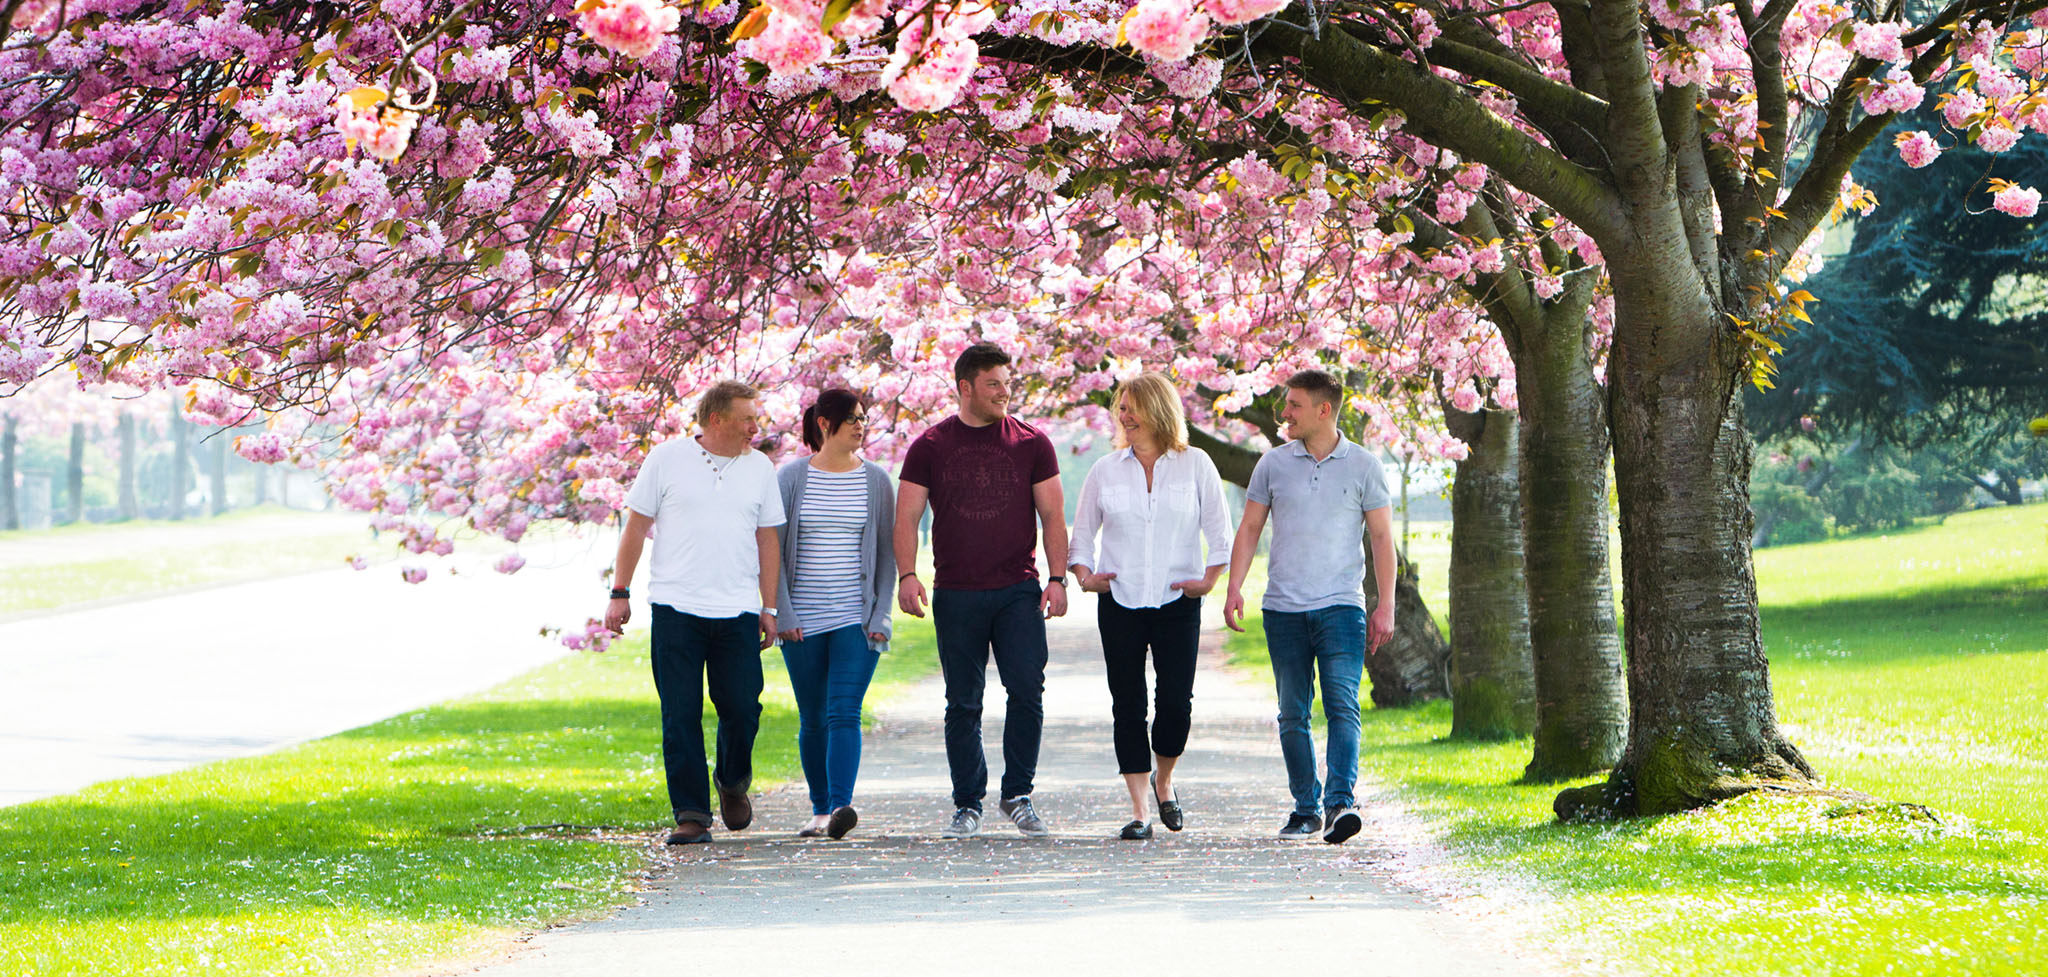 family portrait of family walking under cherry blossom trees by Andrew Collier, Warrington, Cheshire based family portrait photographer